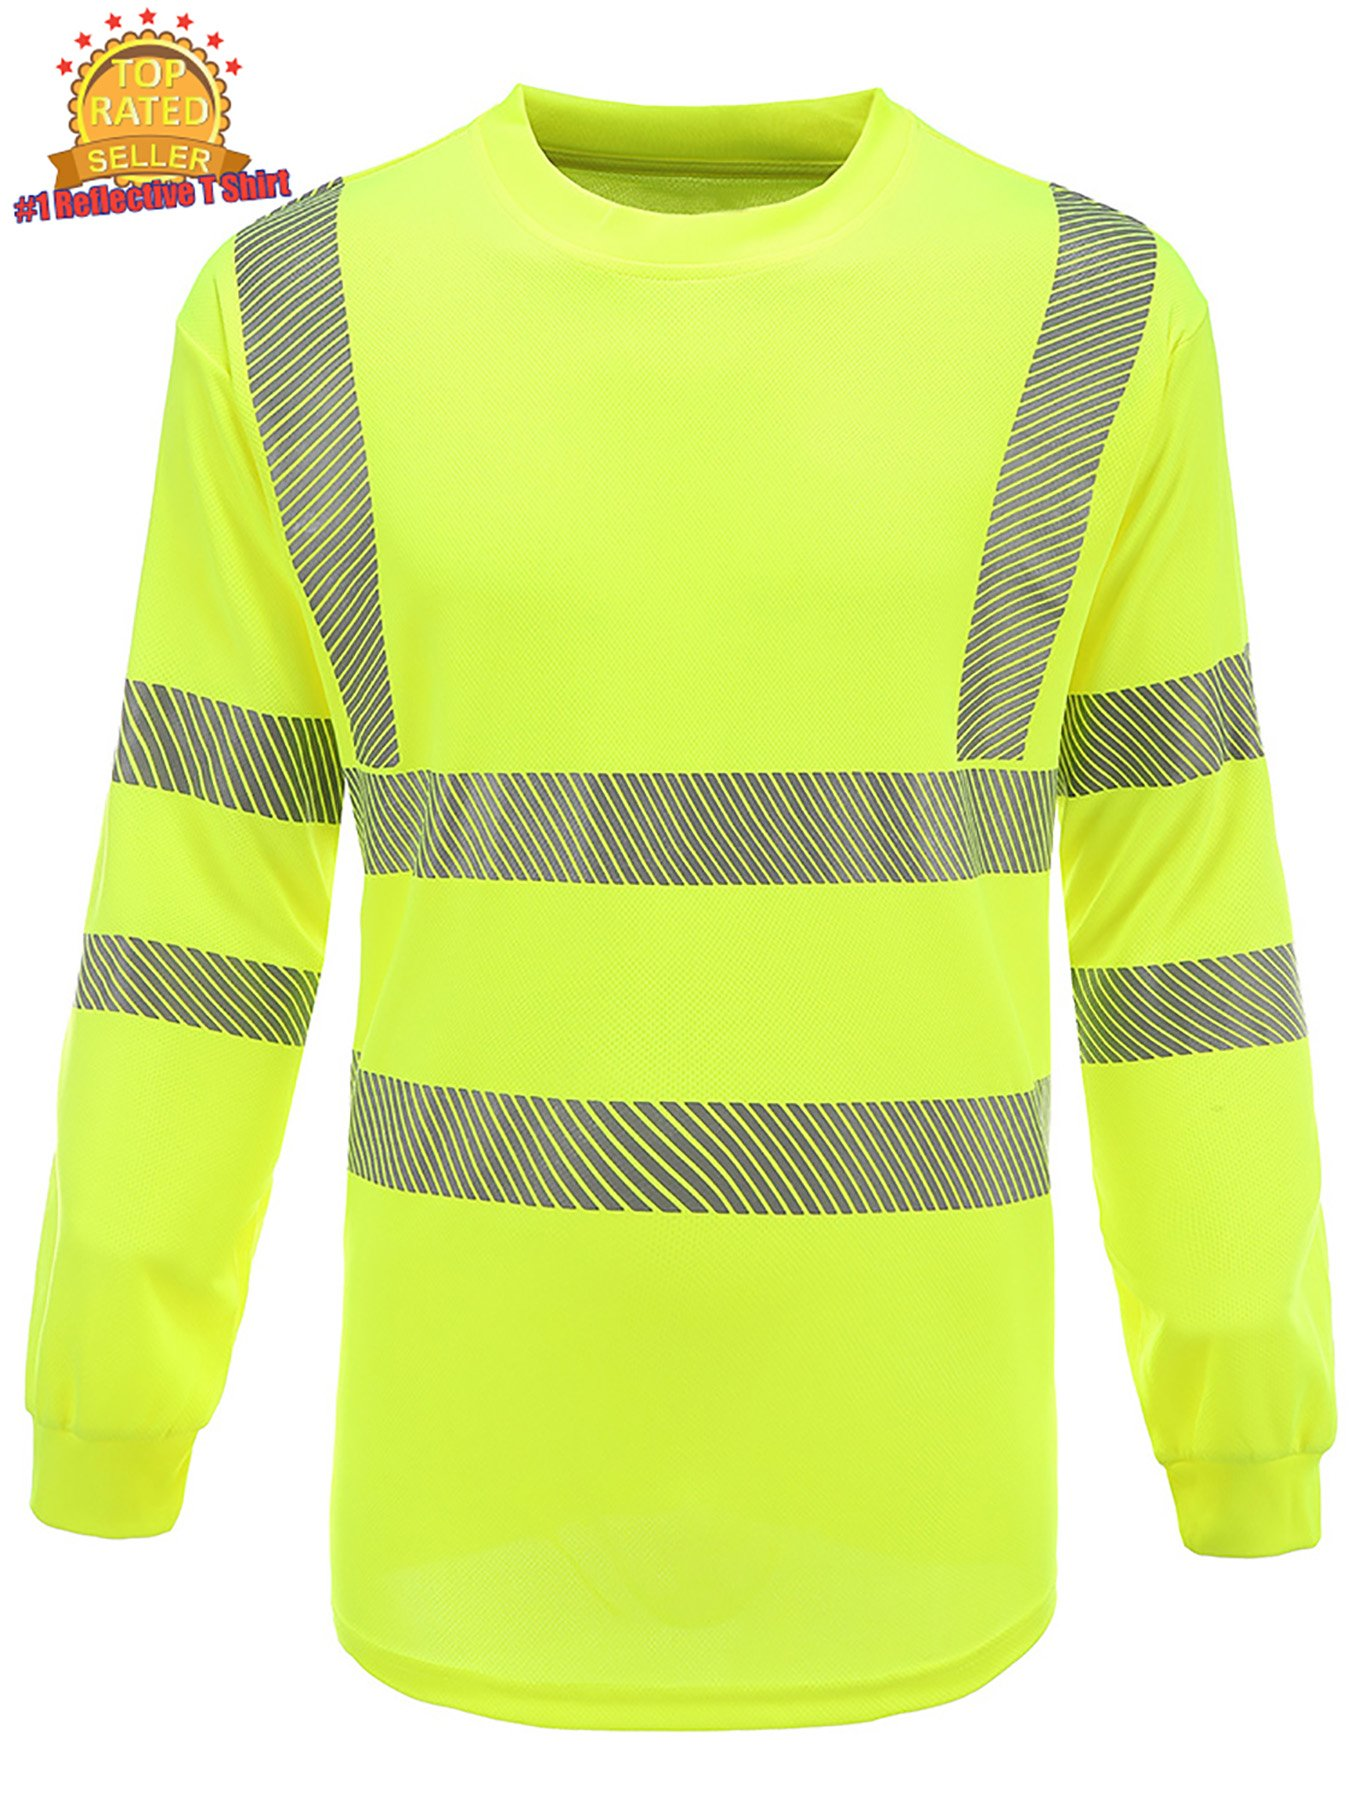 360 USA ANSI ISEA Class 2 Mesh Dry Fit Safety reflective long sleeve T-shirt